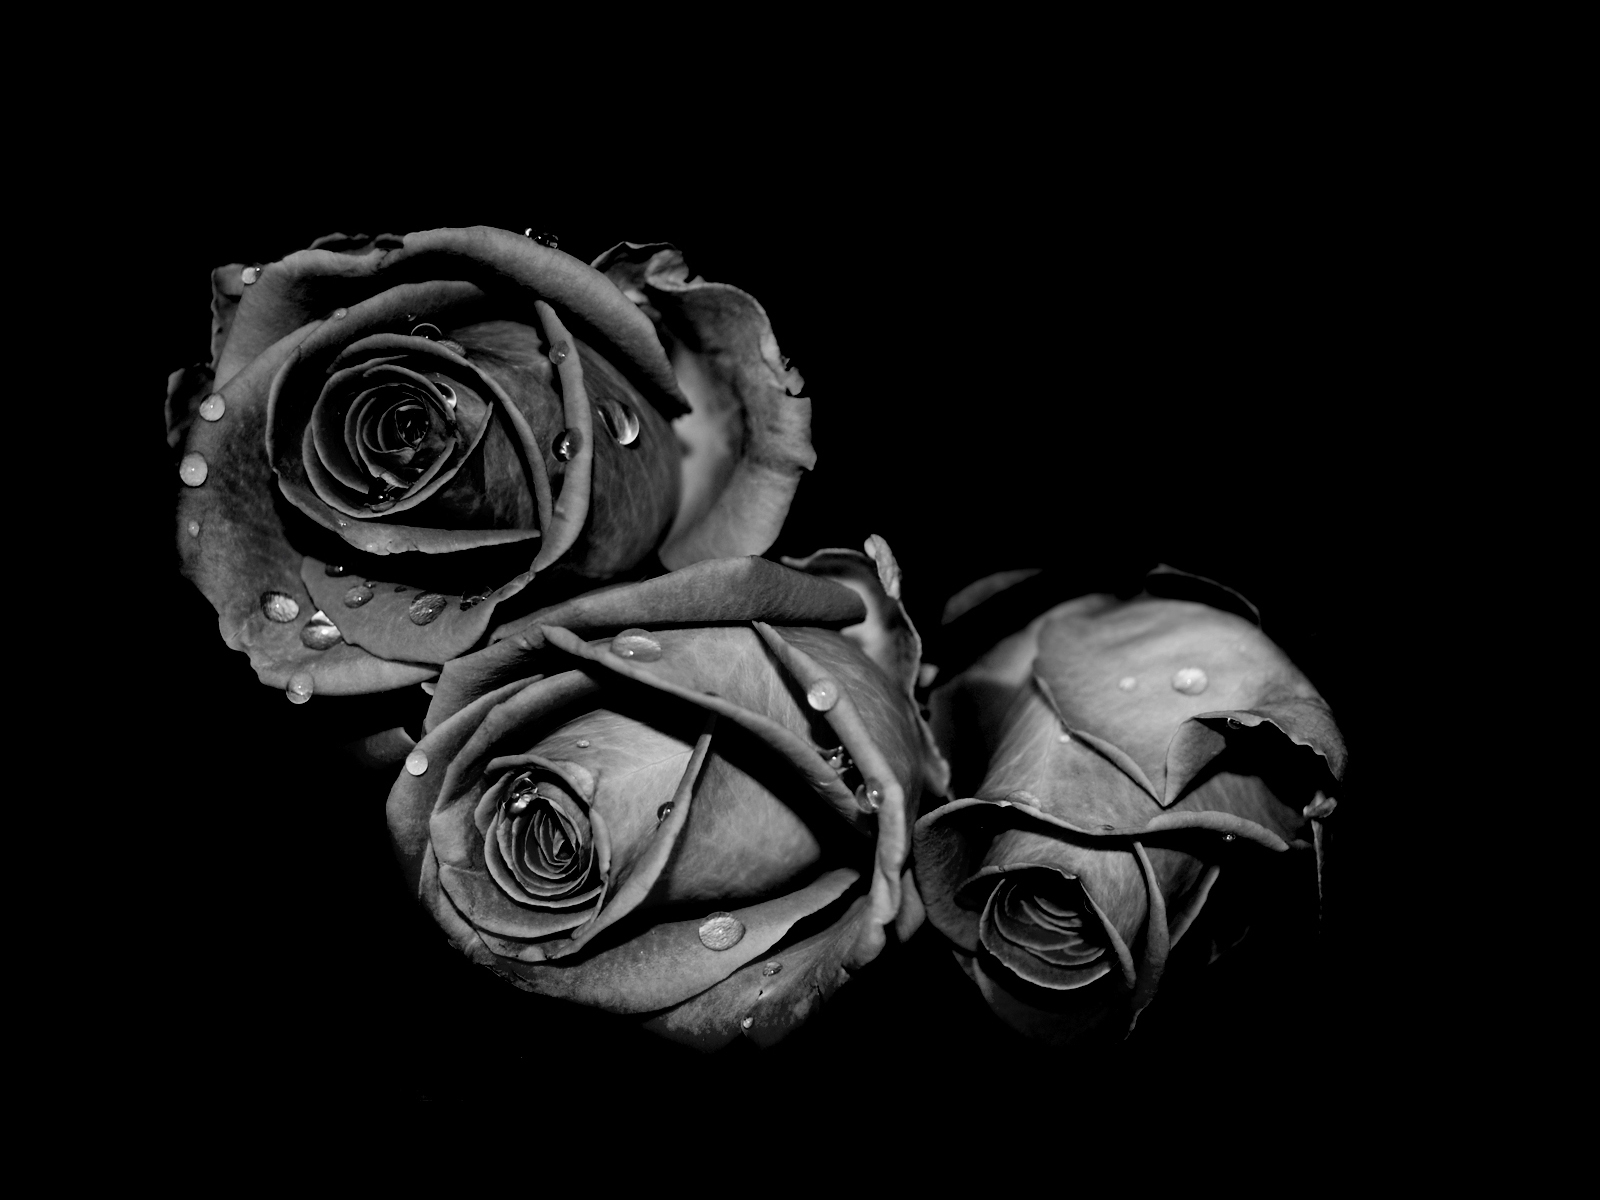 black rose, 49 best hd wallpapers of black rose, high quality black